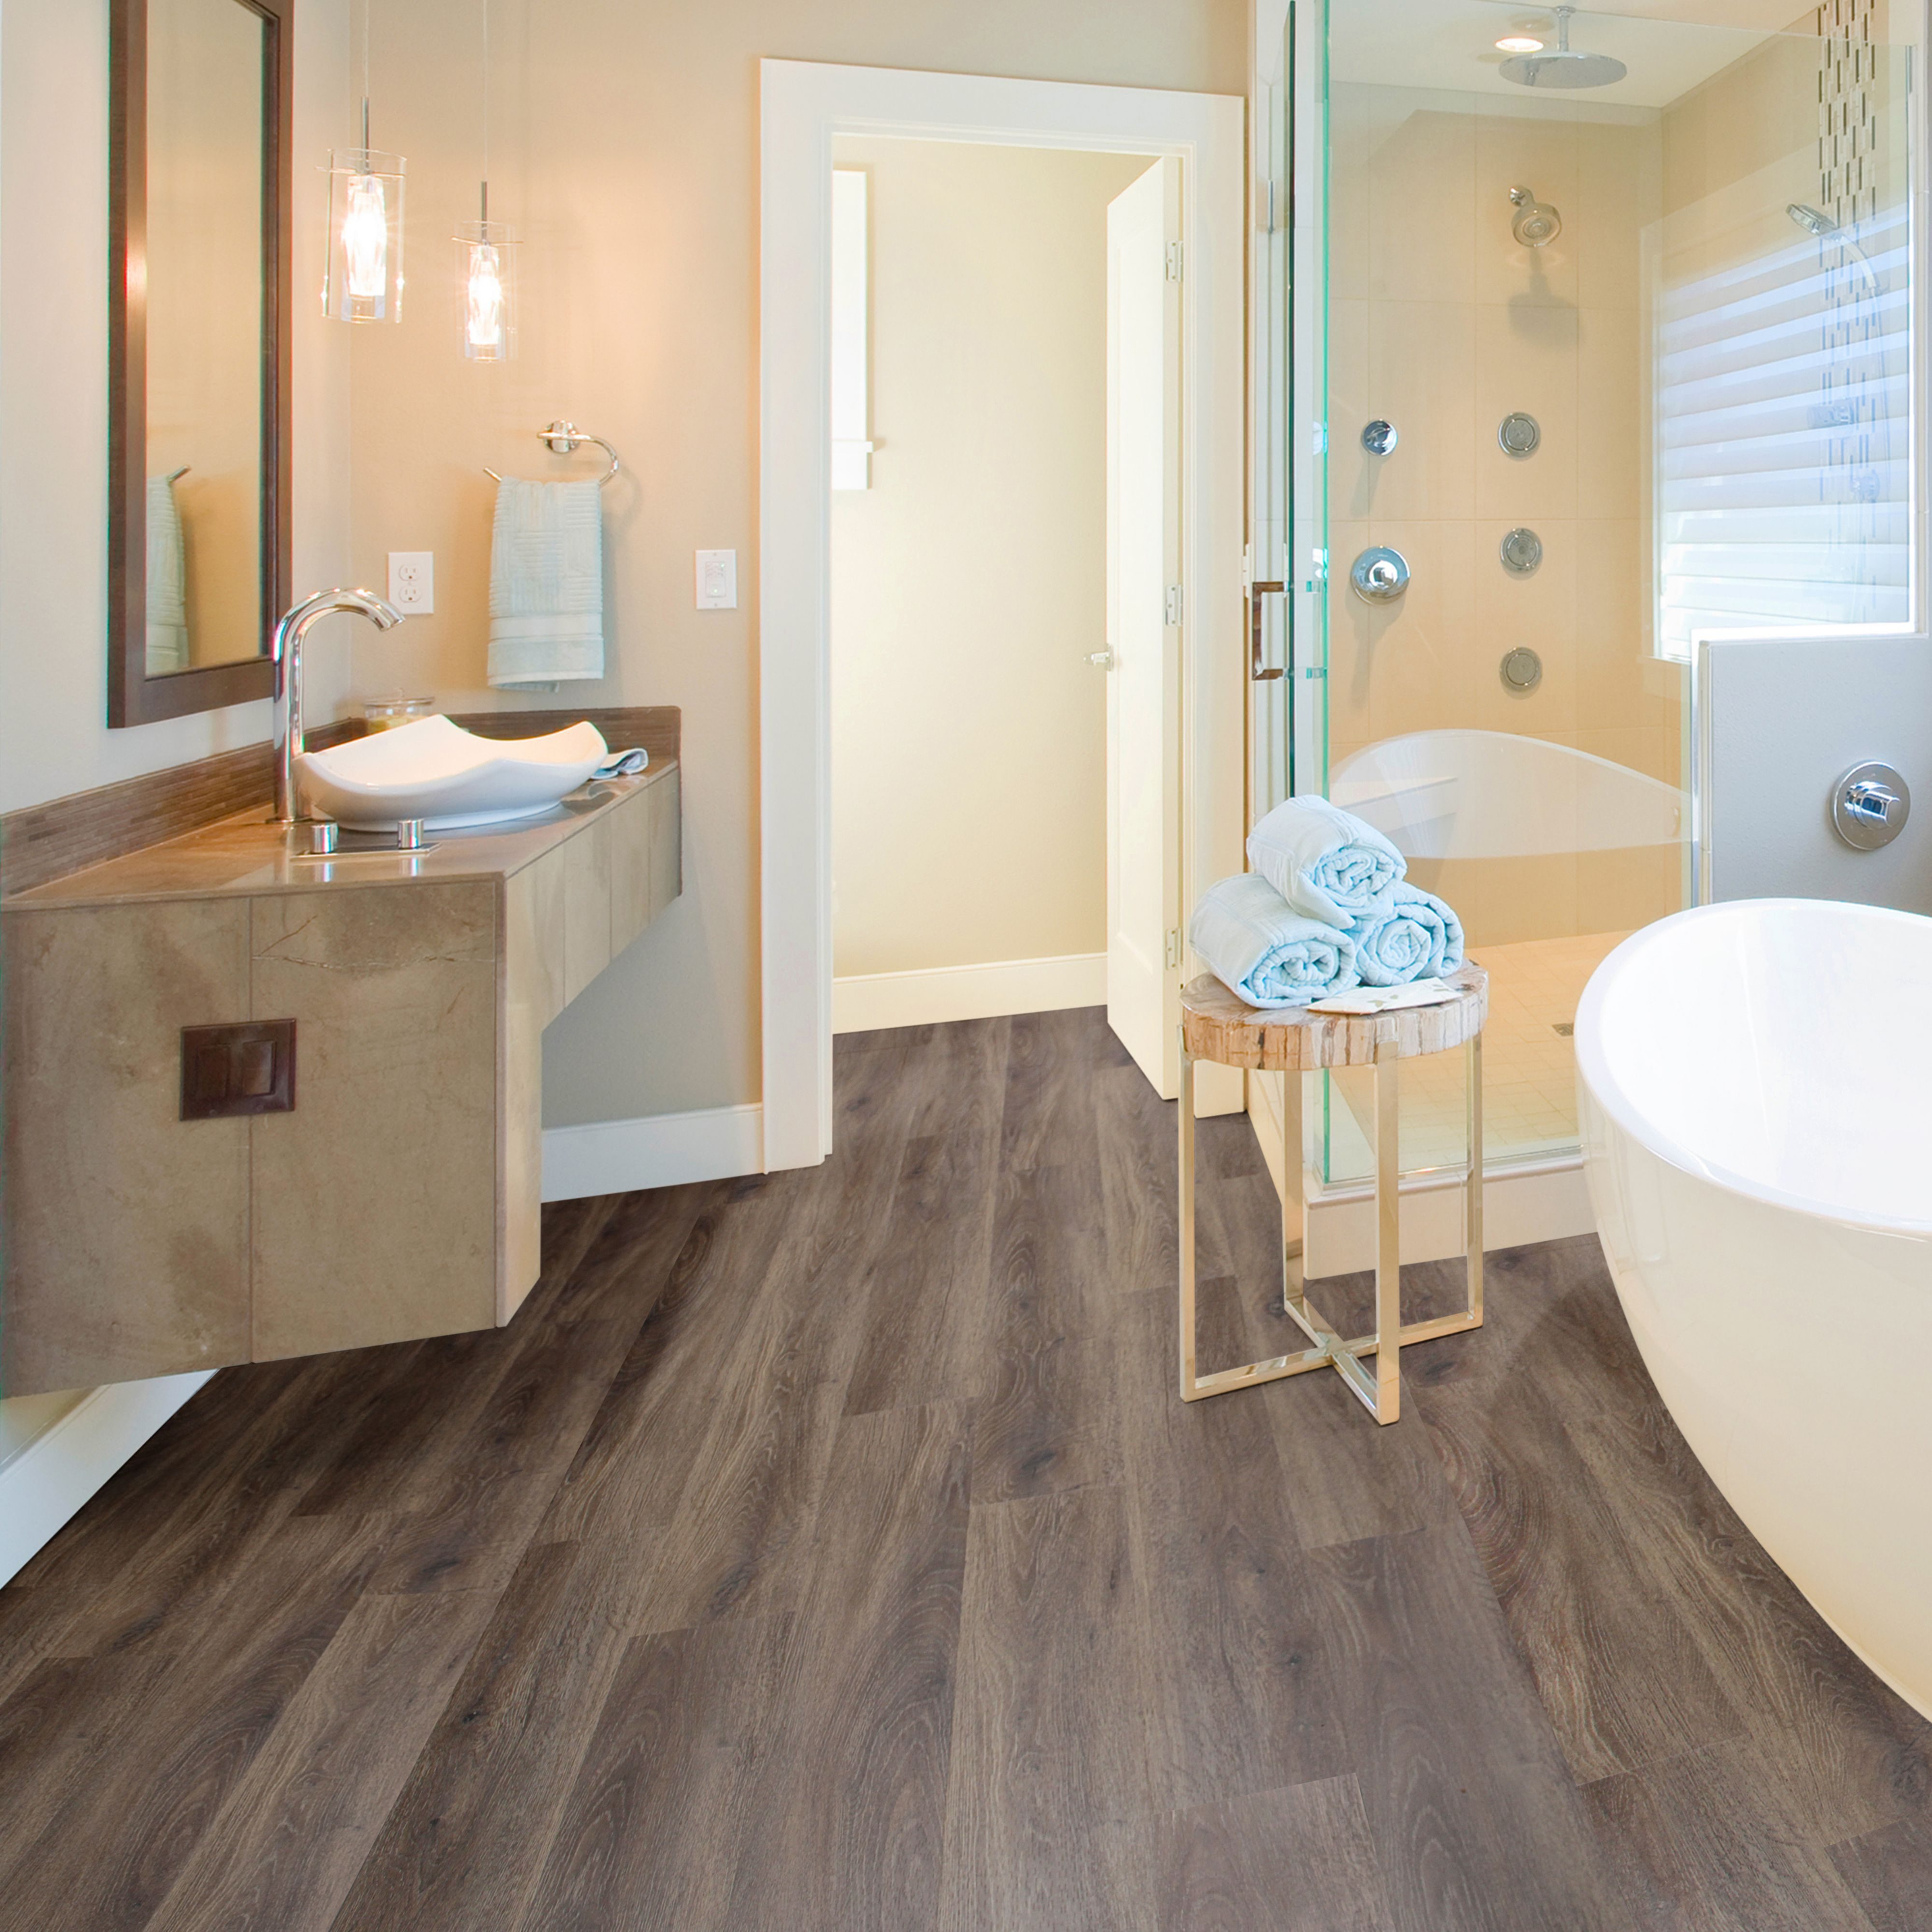 Waterproof Bathroom Wall Panels >> Brown Natural oak effect Waterproof Luxury vinyl click flooring 2.20m² Pack | Departments | DIY ...